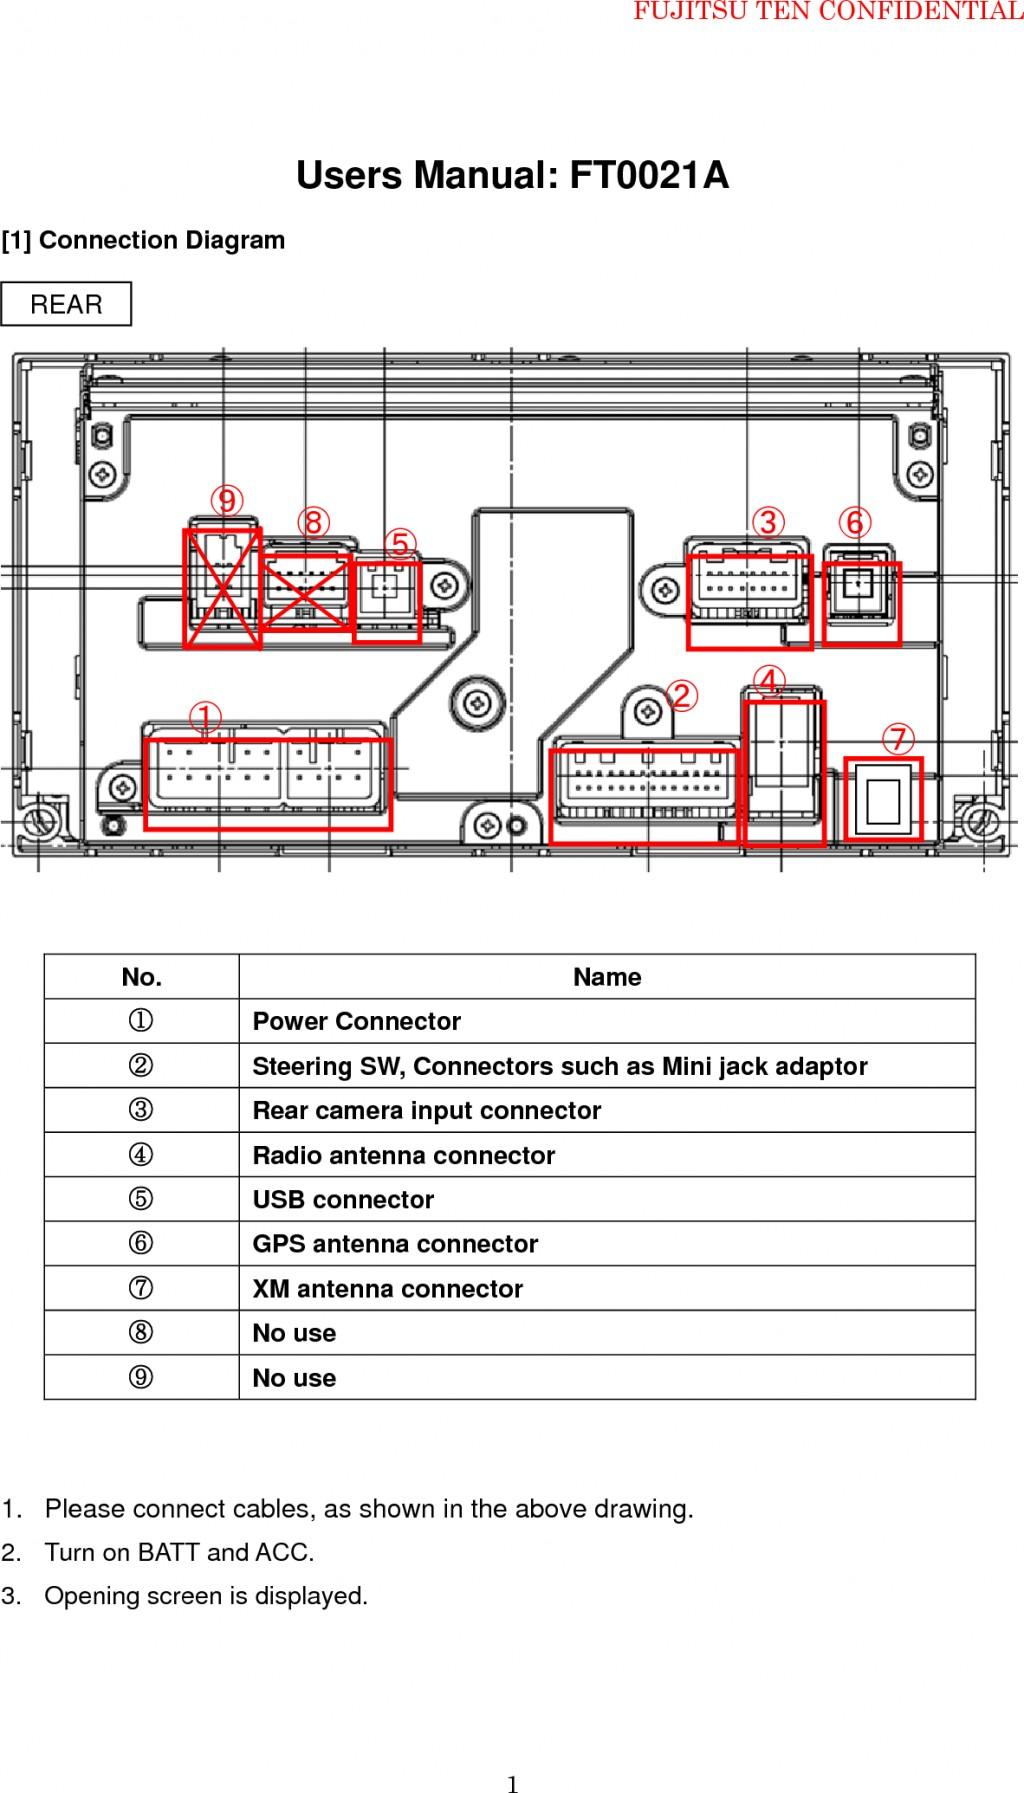 fujitsu ten wiring diagram toyota free download  u2022 oasis